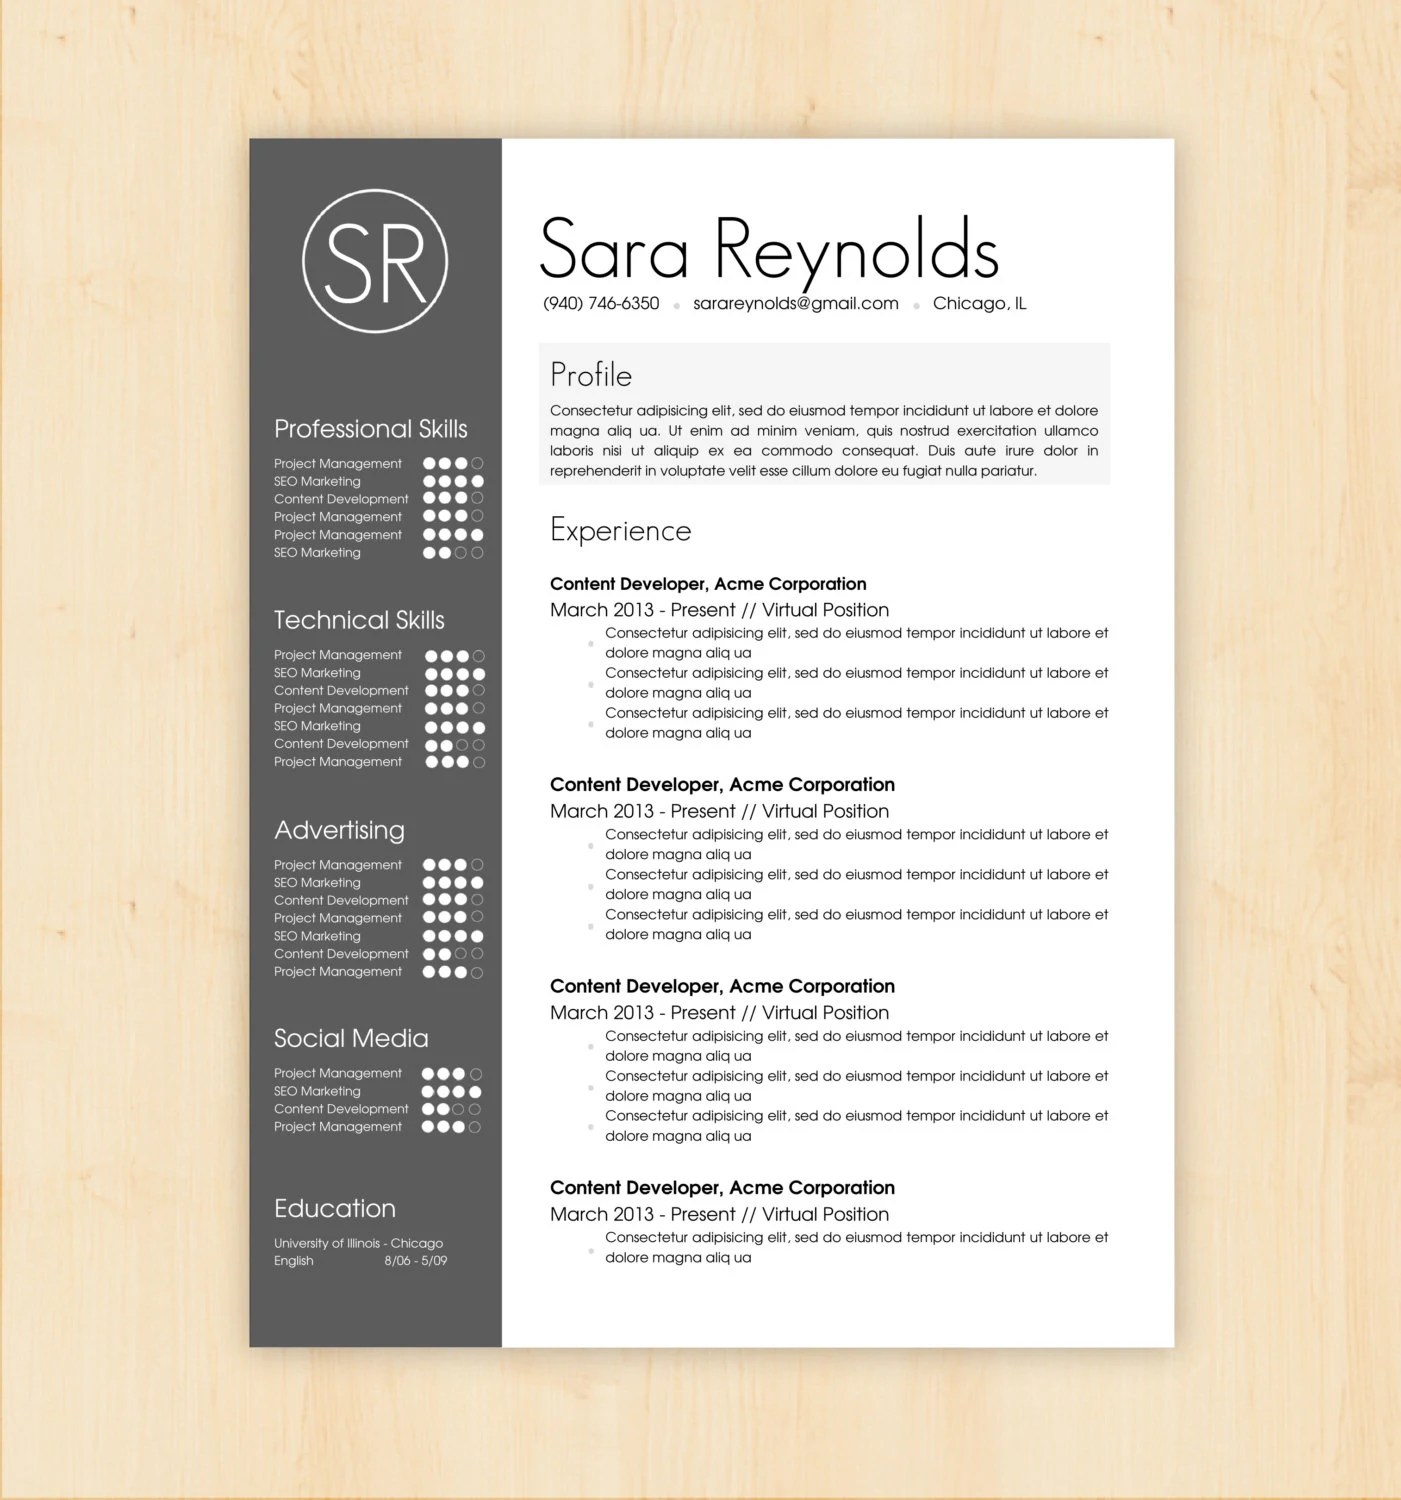 font for resume title sample customer service resume font for resume title resume define resume at dictionary like this item